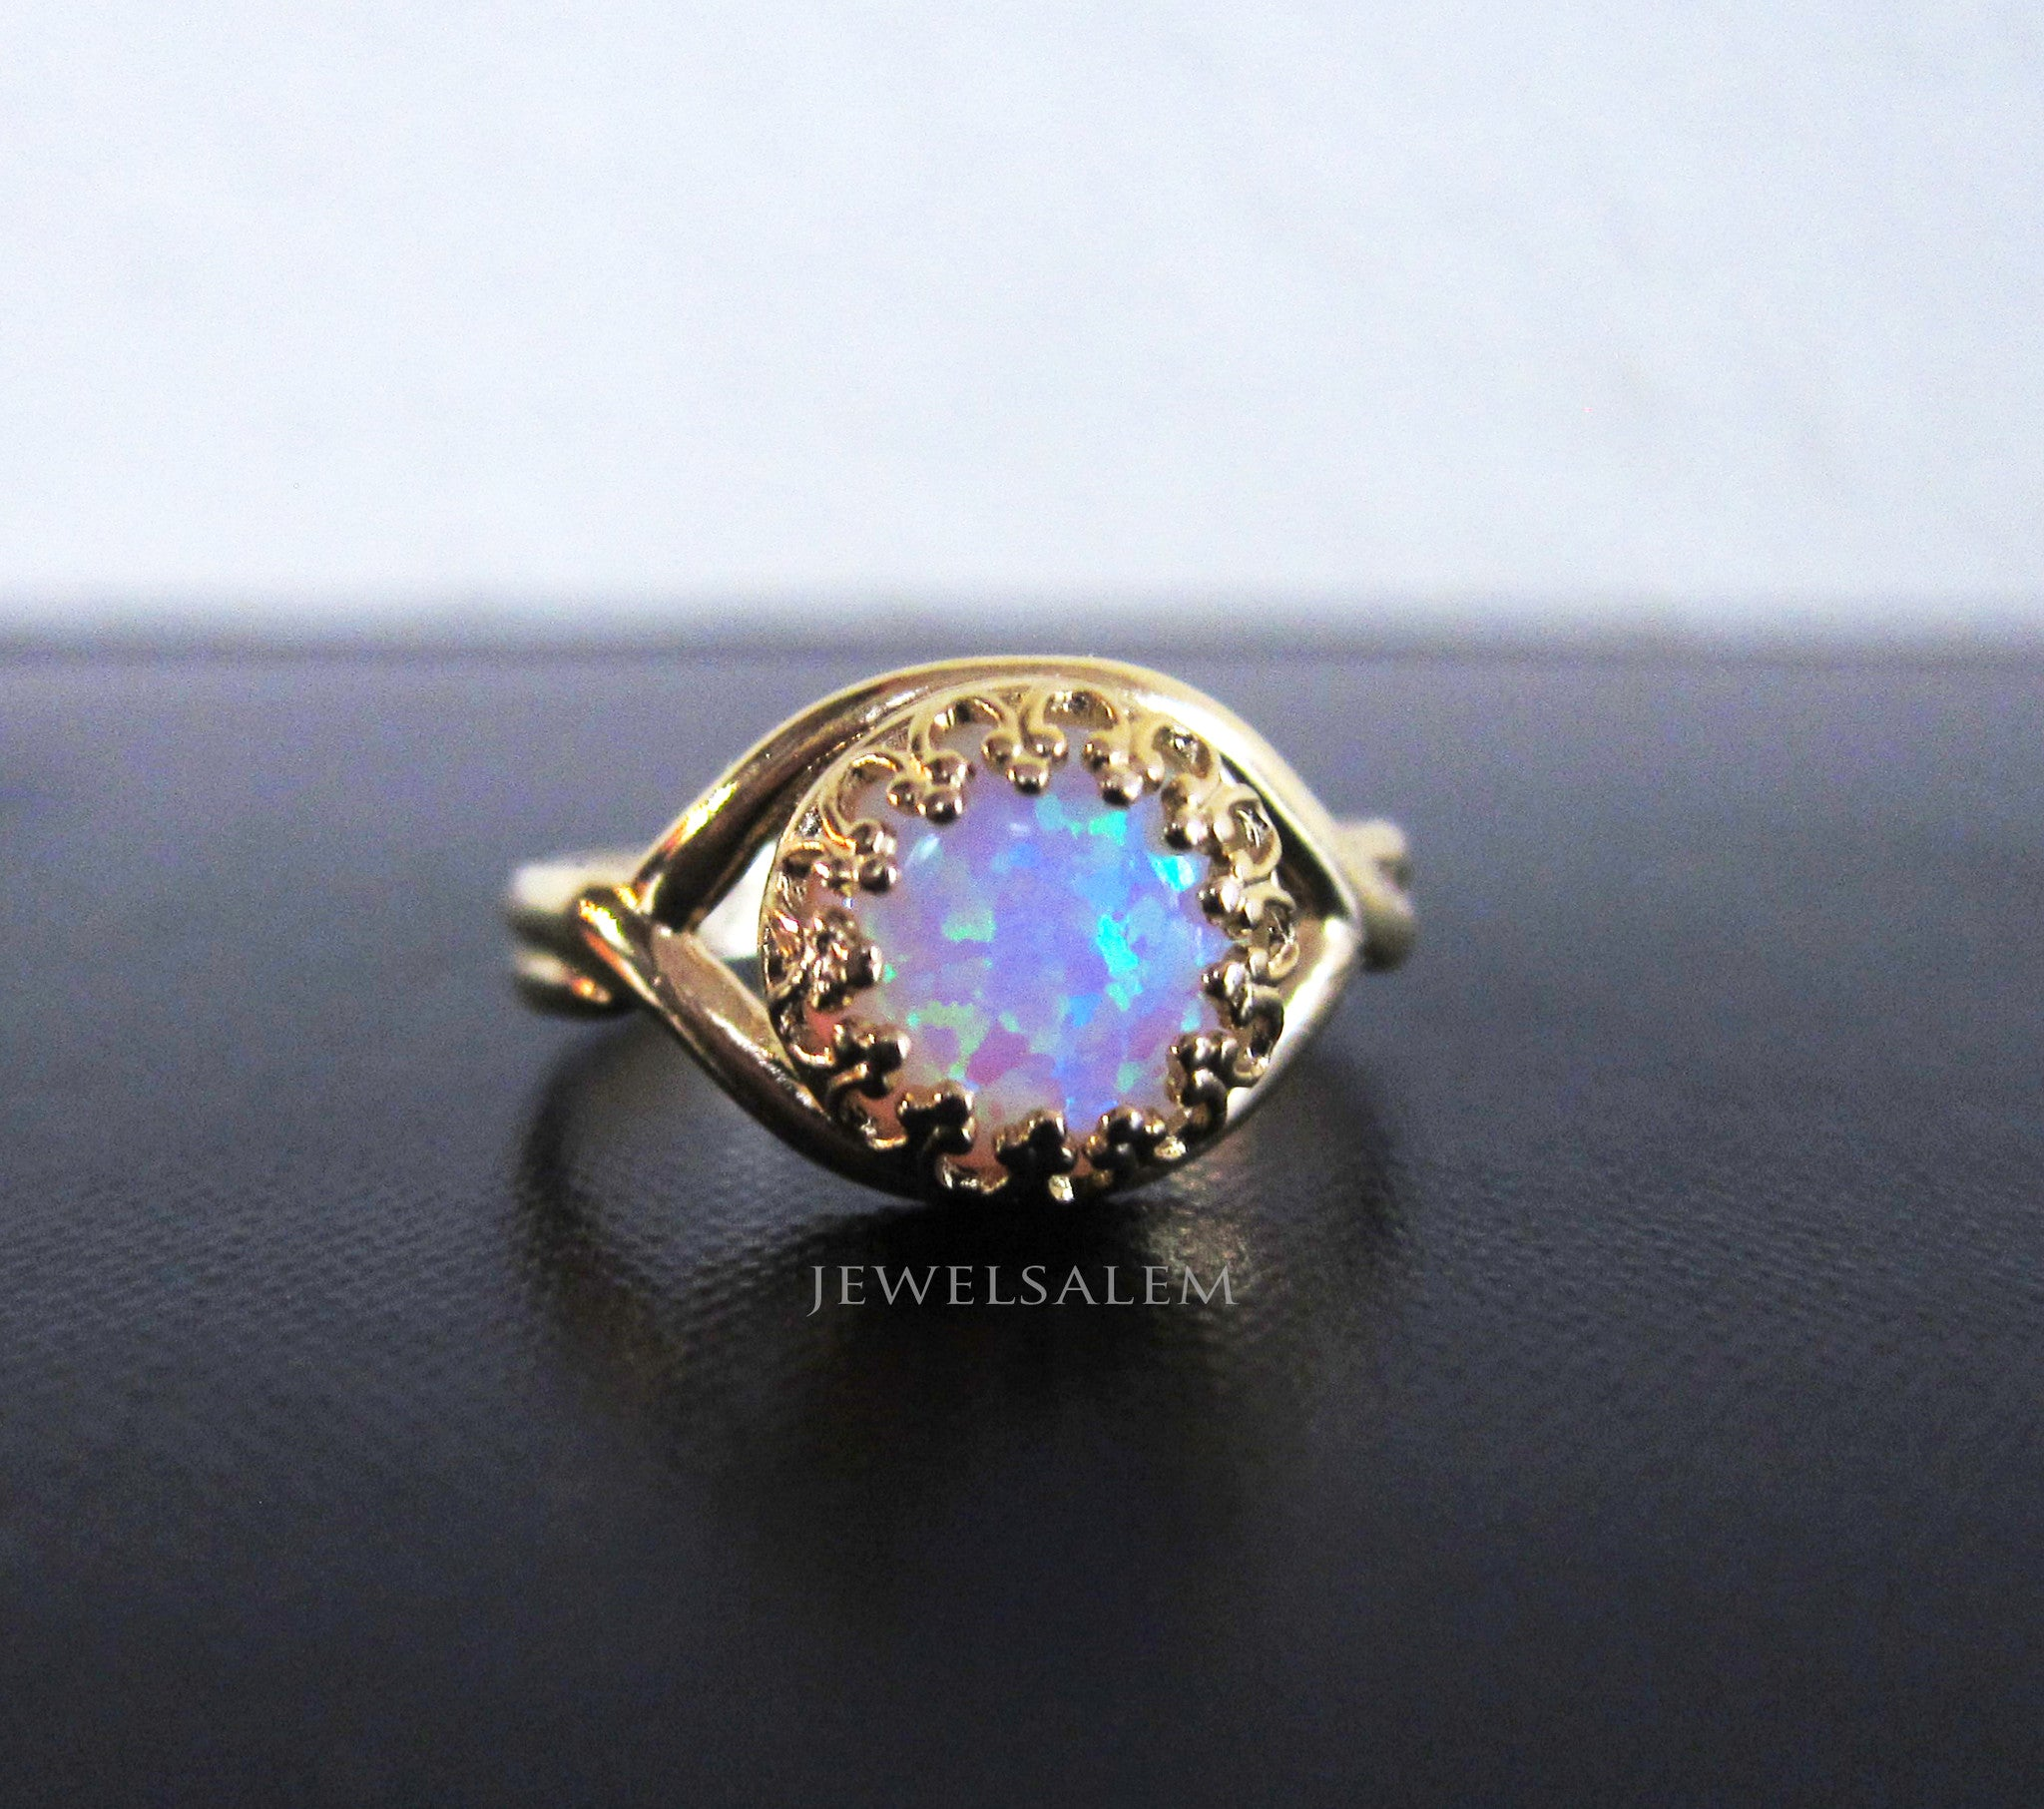 Fire Opal Ring Gold Oxidized Sterling Silver Rainbow Opal Ombre Ring Glitter Confetti Gift for Sister Friendship Best Friend Promise Ring - Jewelsalem